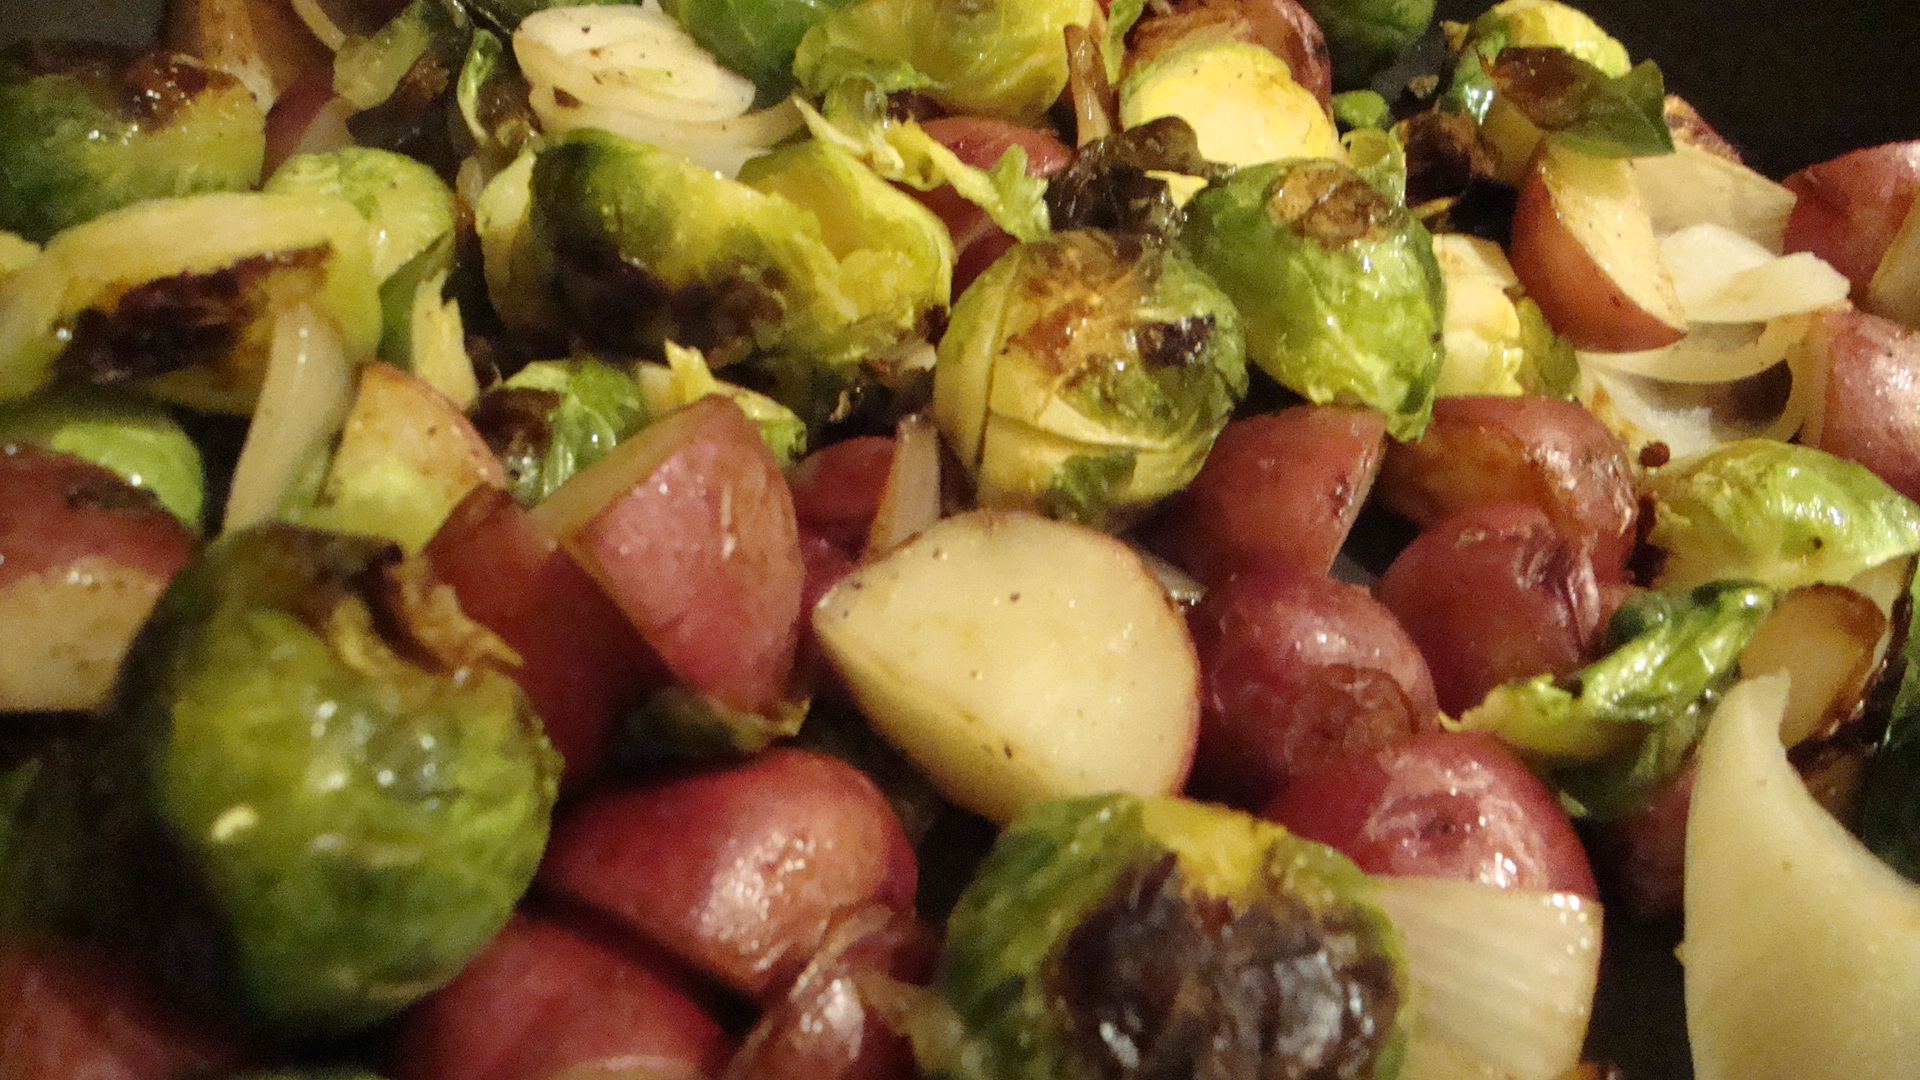 Pan-Roasted Brussels Sprouts with New Potatoes, Onions, and Crispy Parmesan